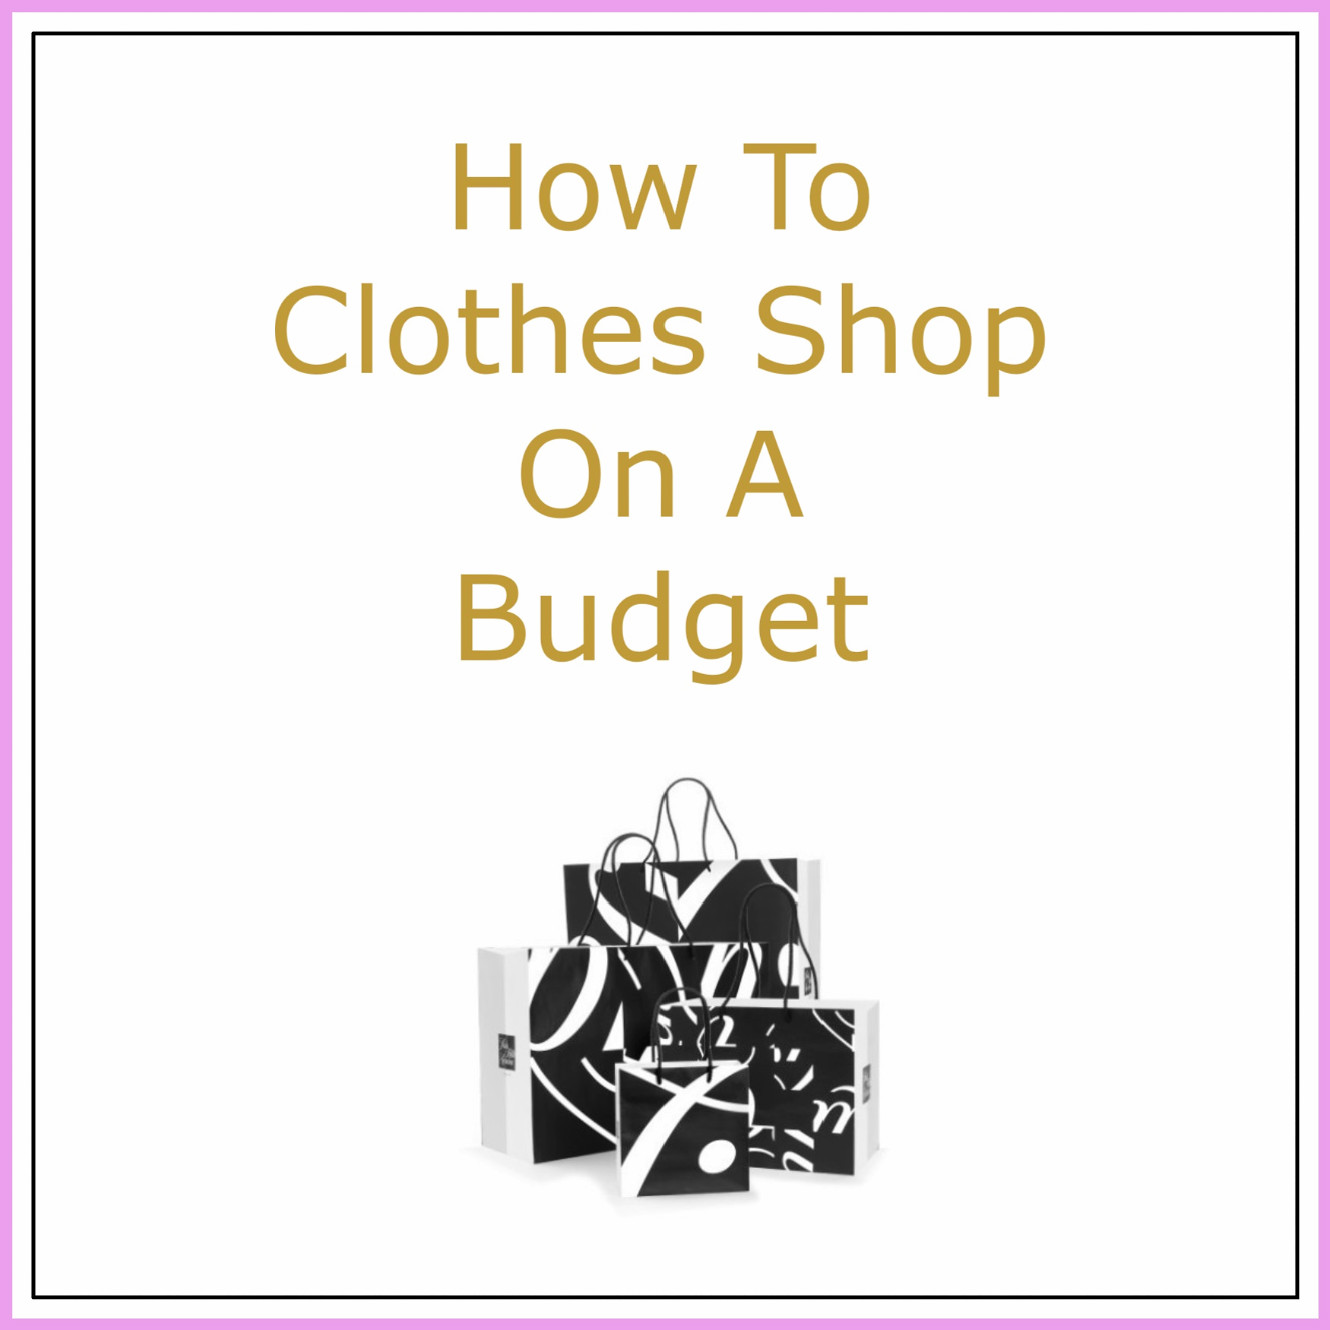 How To Clothes Shop On A Budget Graphic